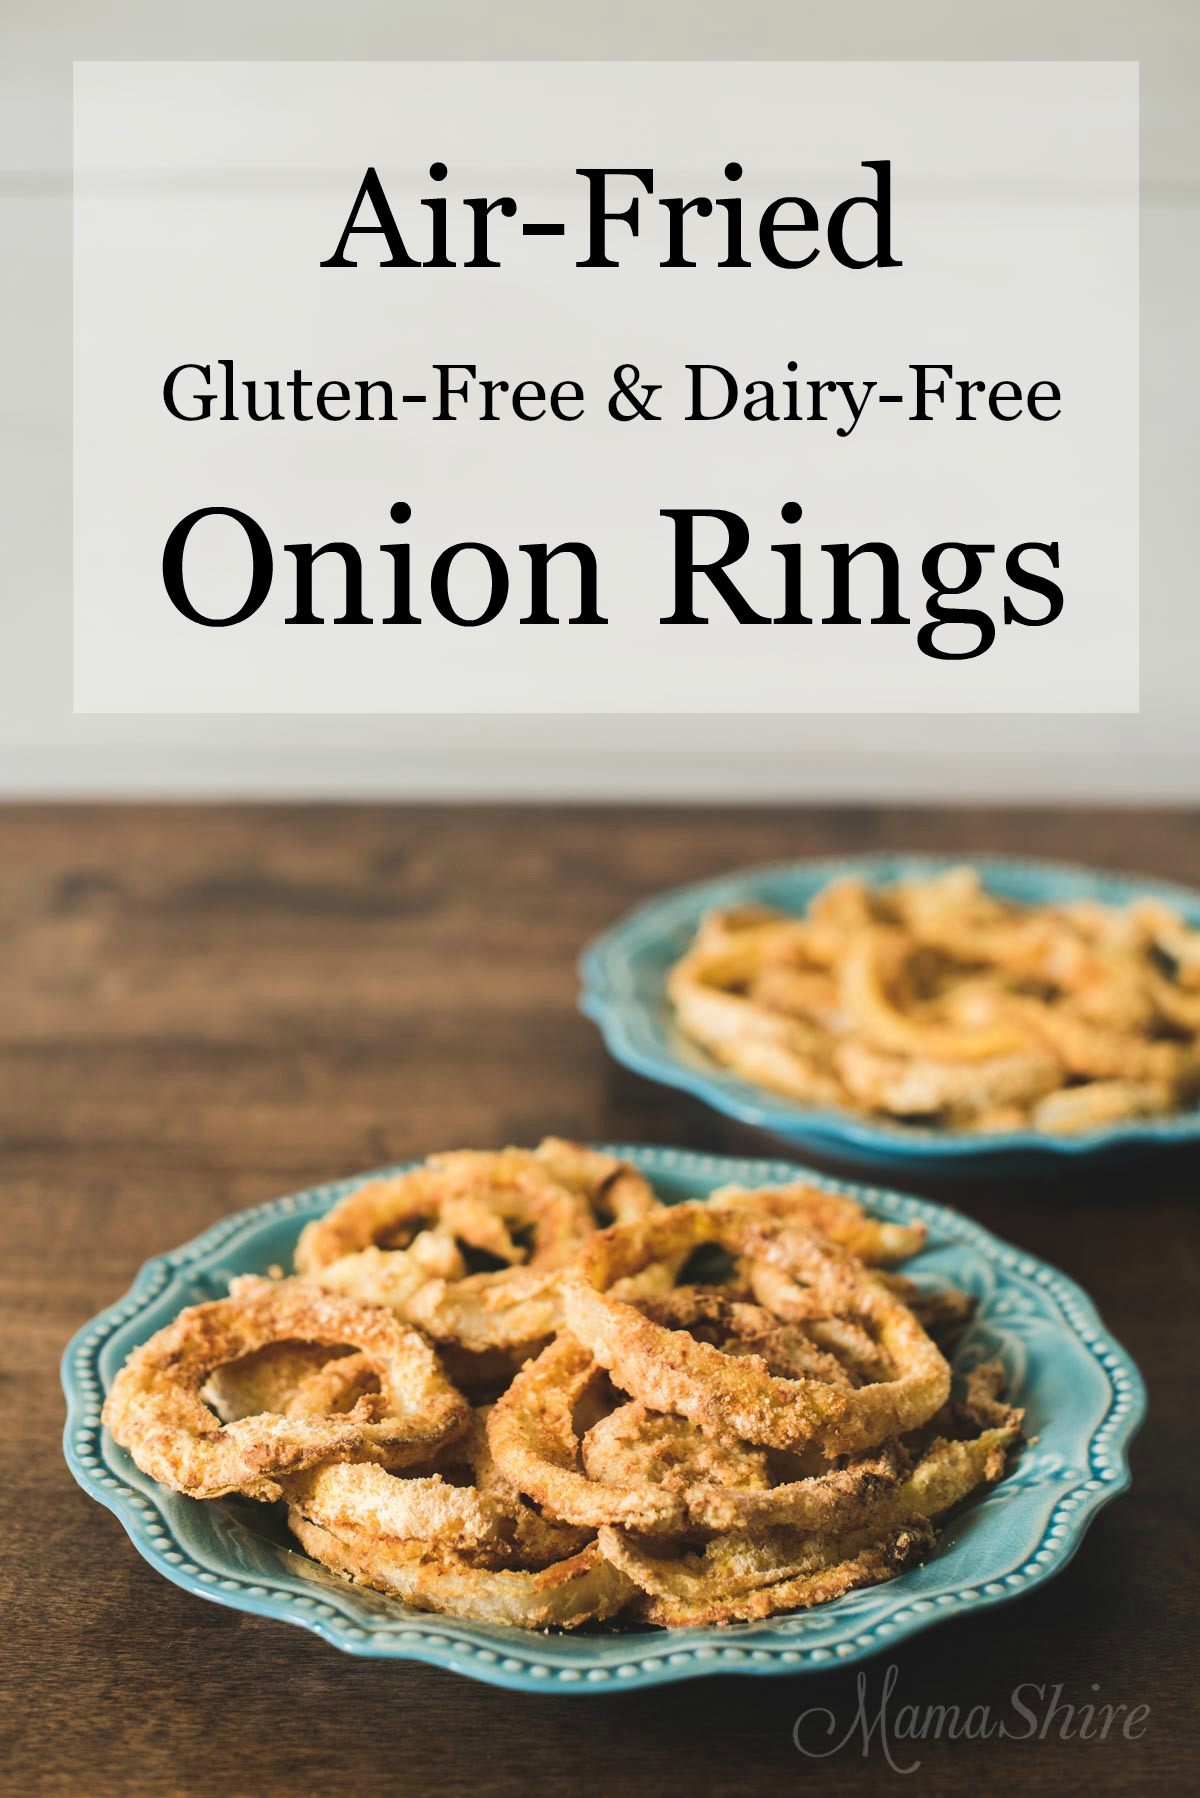 Air Fried Gluten Free Onion Rings